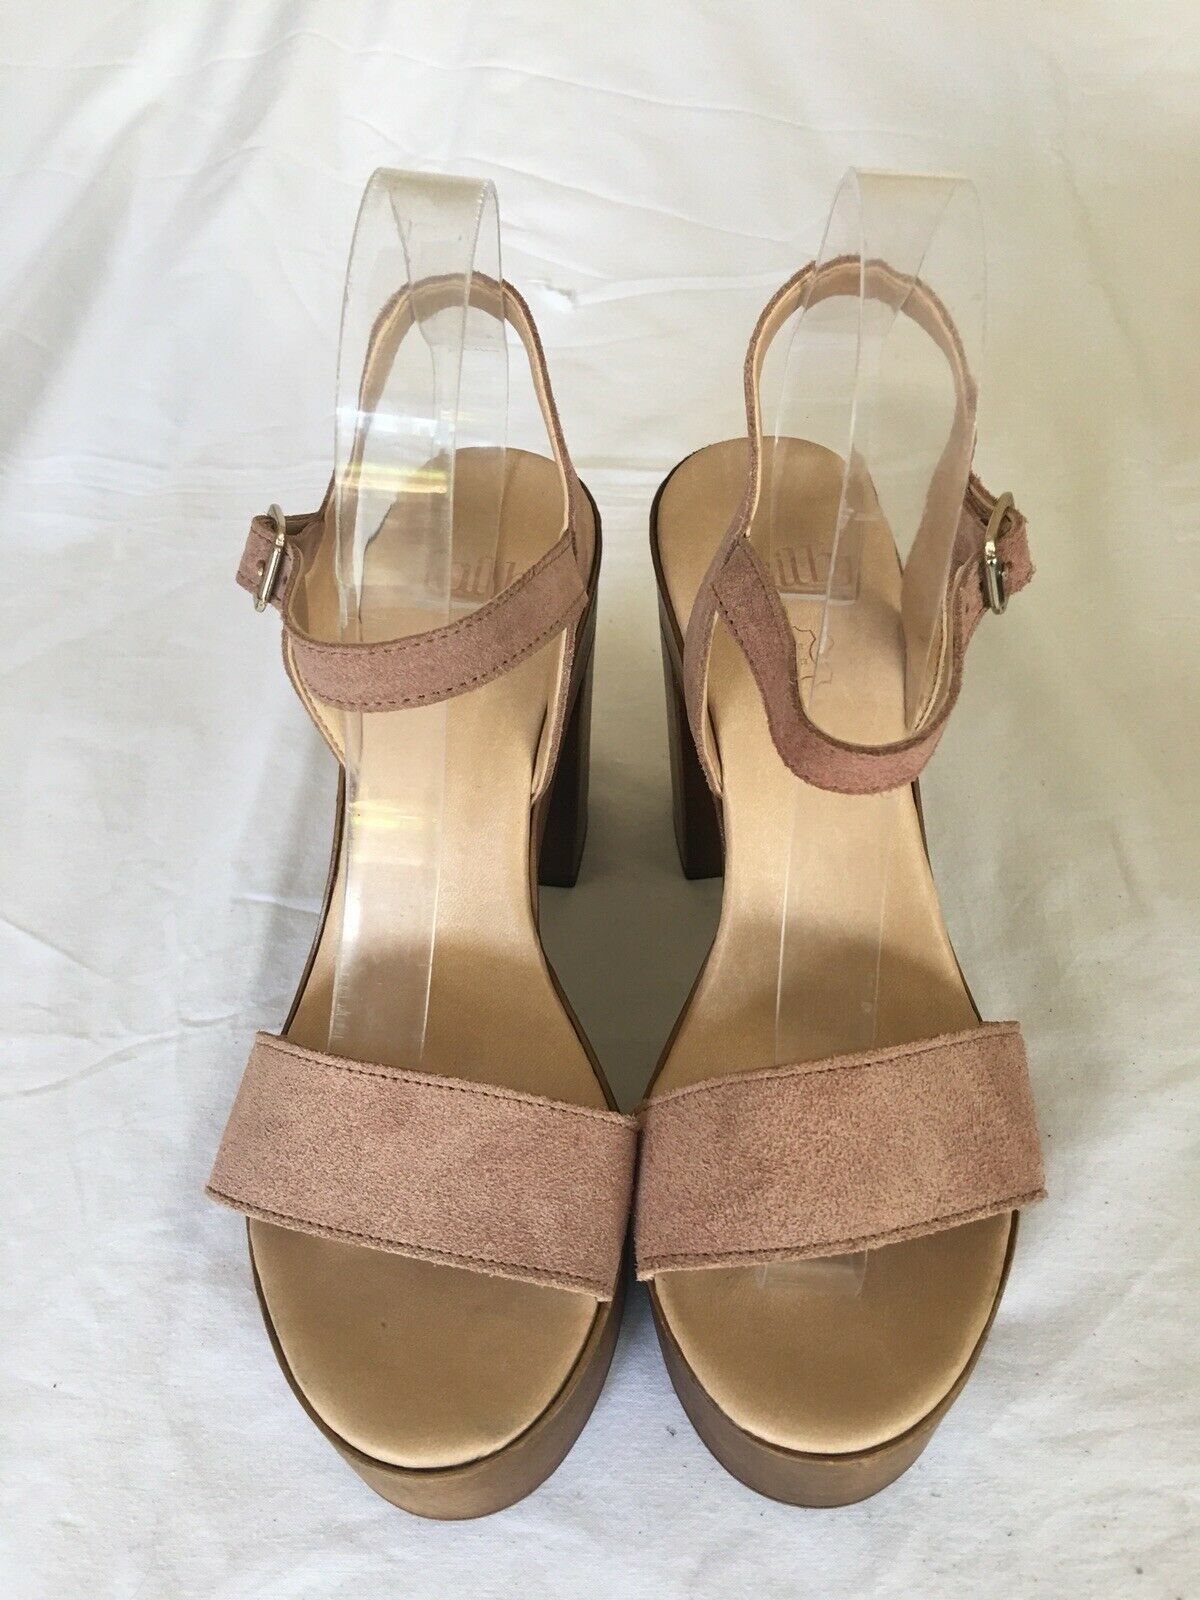 Faith Women Platfornm Light Brown Suede Leather Shoes Size 6 (H69).